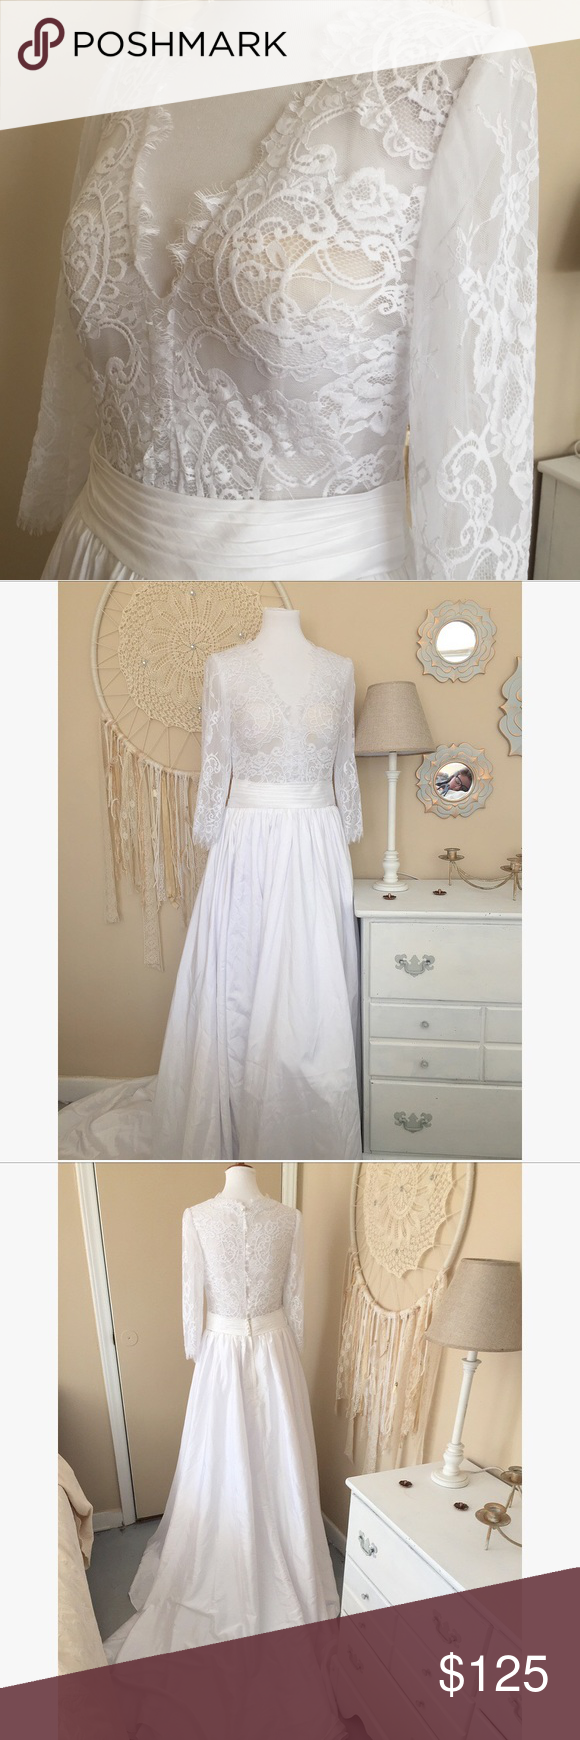 Gorgeous NWT White Lace Wedding Gown Dress This wedding dress is NWT by Jen  Jen House 572cfedaf